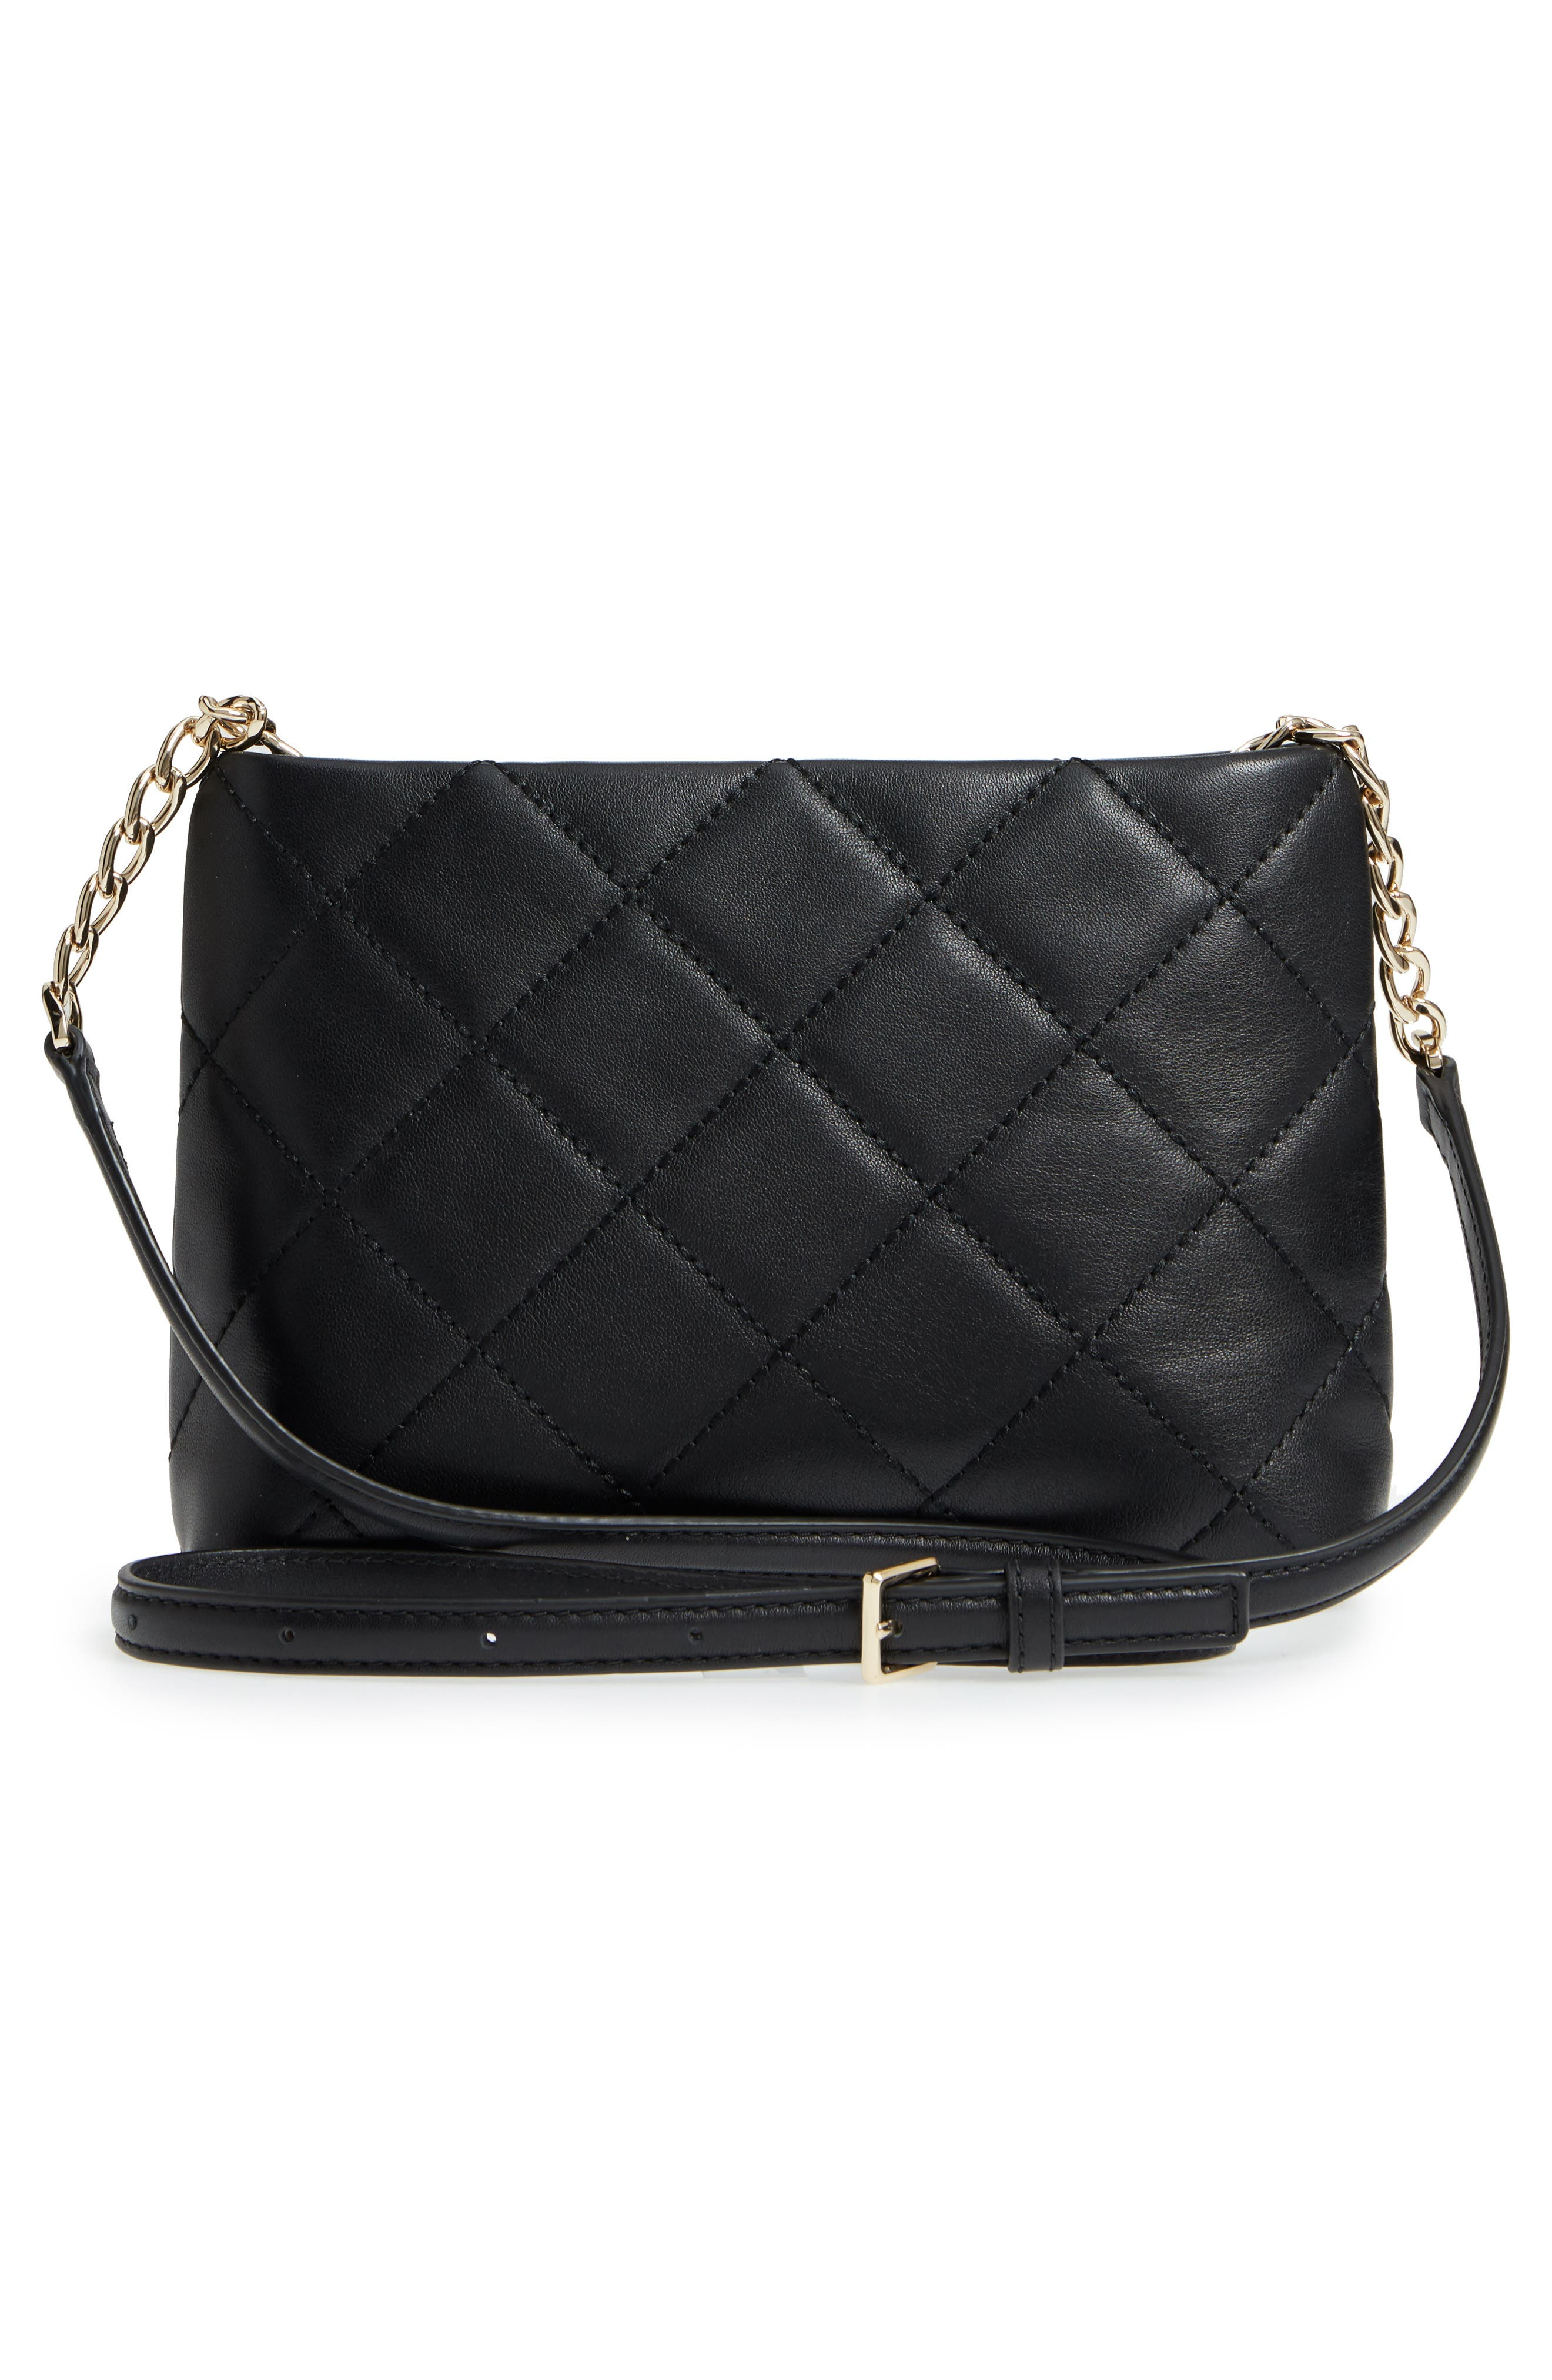 KATE SPADE NEW YORK,                             emerson place caterina leather crossbody bag,                             Alternate thumbnail 3, color,                             001